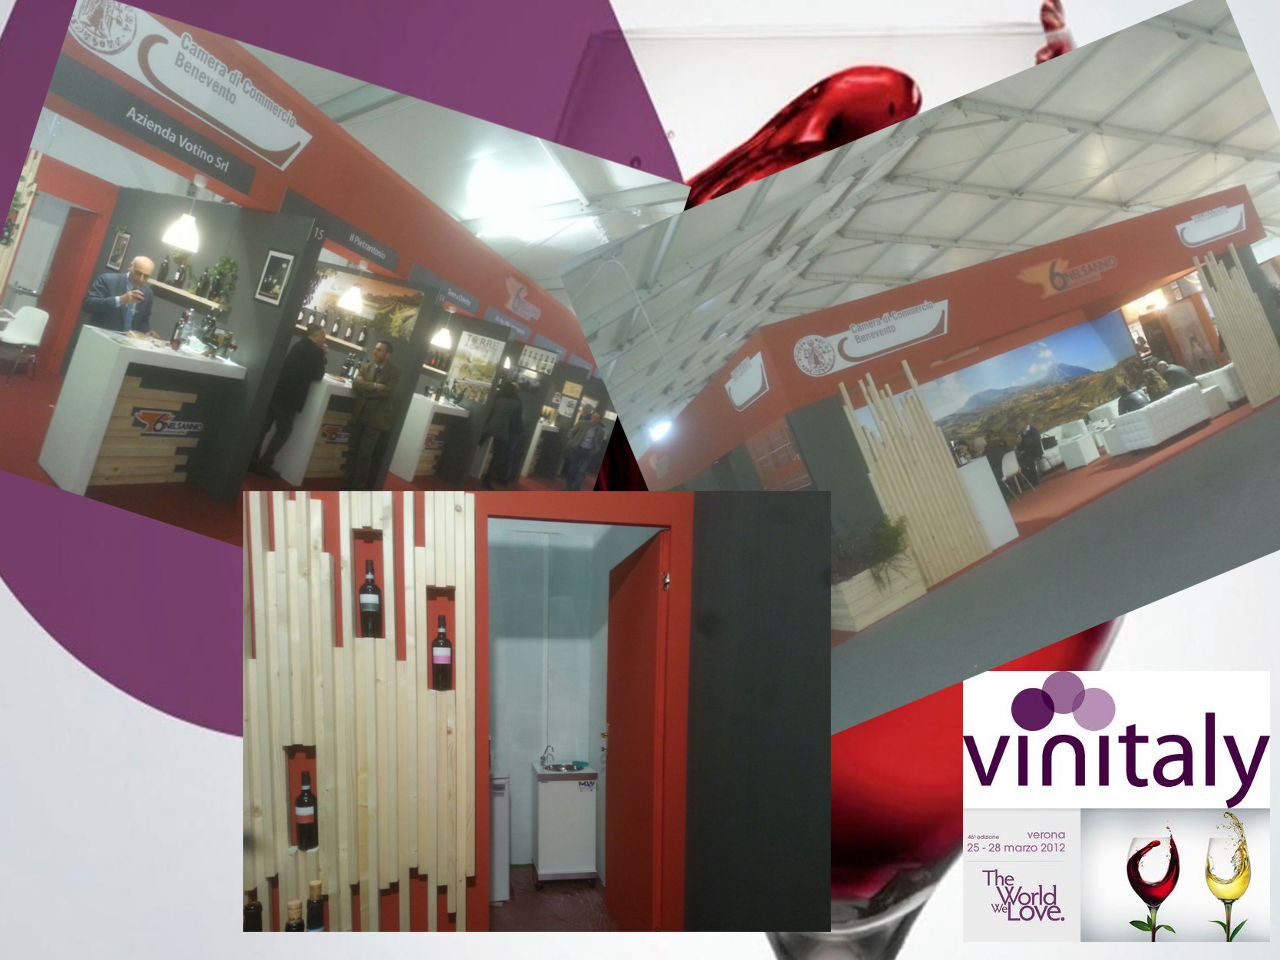 MOVINGWATER AT THE VINITALY 2015